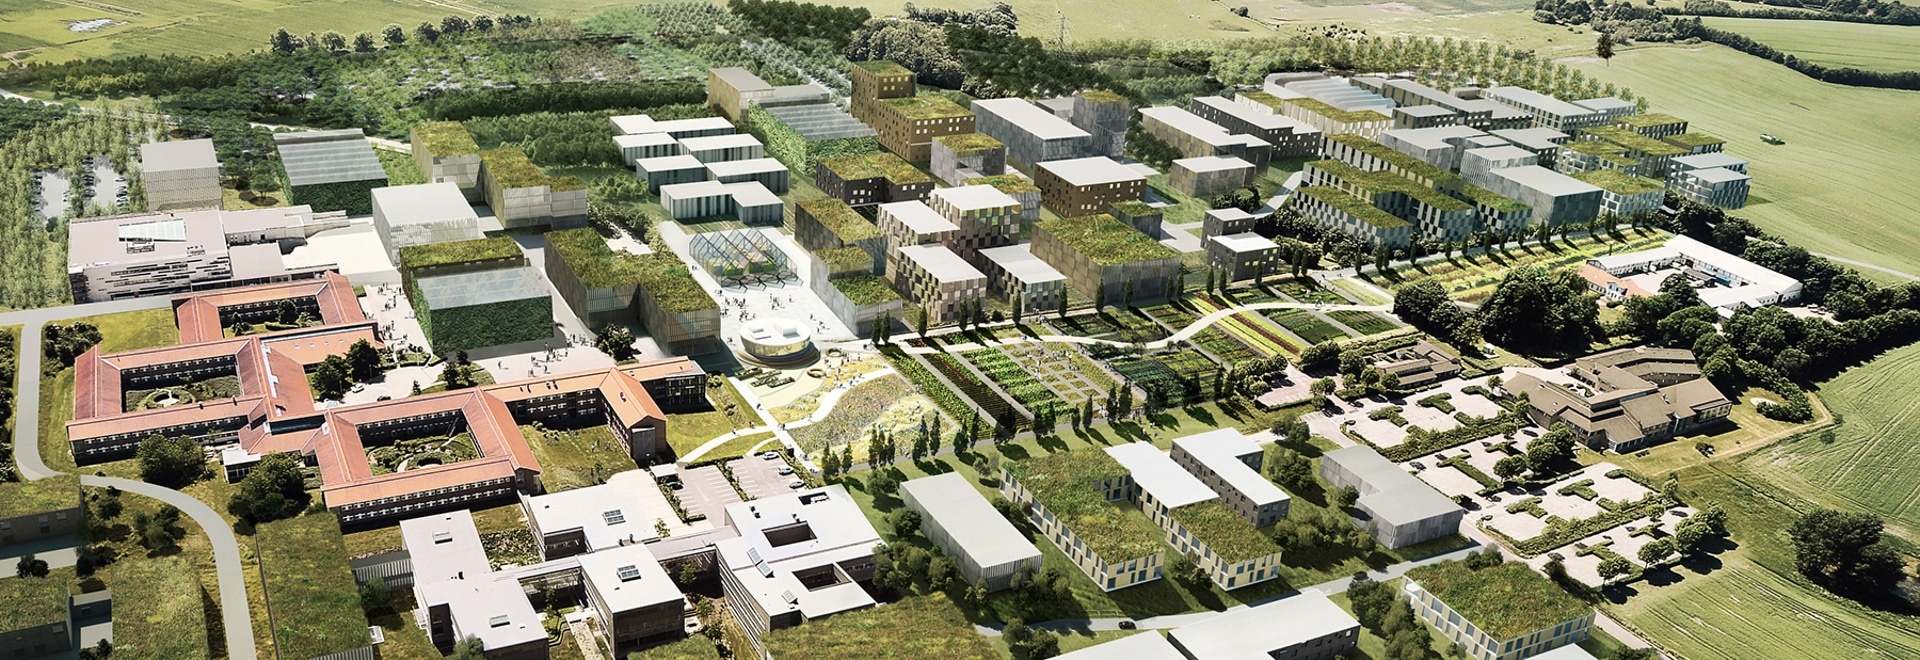 GXN and william mcdonough masterplan denmark's 'silicon valley of agriculture'